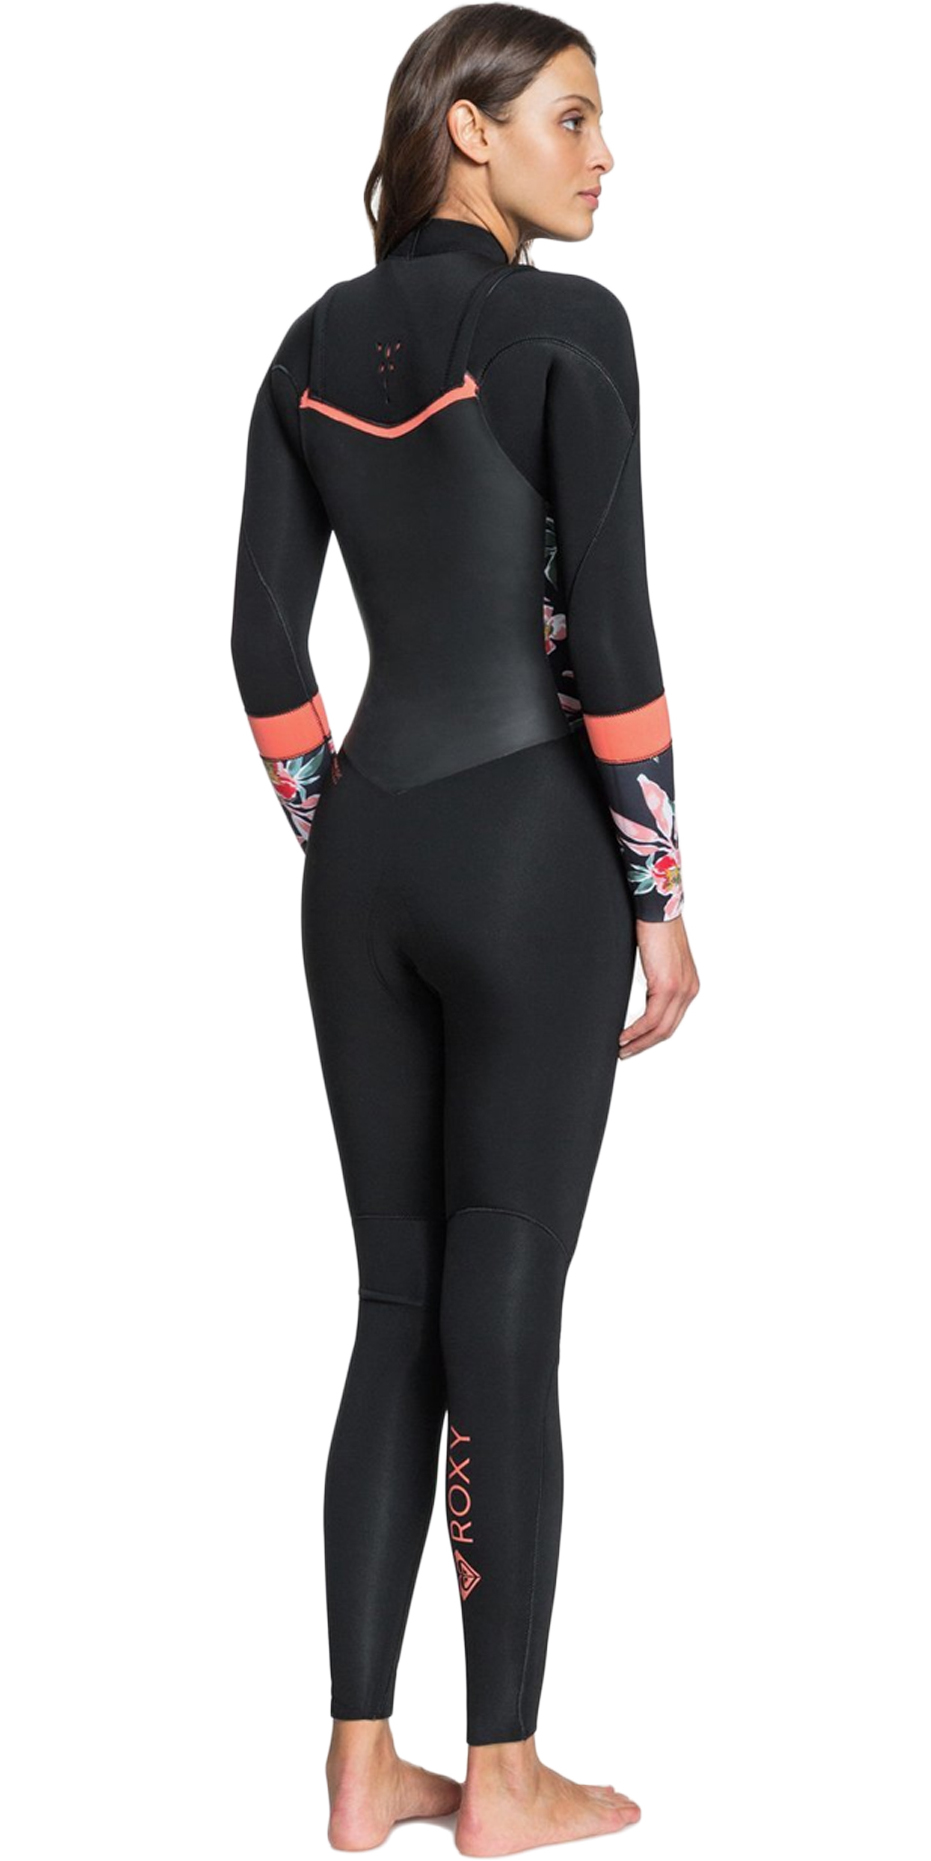 Roxy Womens Syncro 4//3mm Back Zip Wetsuit Thermal Warm Heat Layer Layers Easy Stretch Lightweight Black Bright Coral